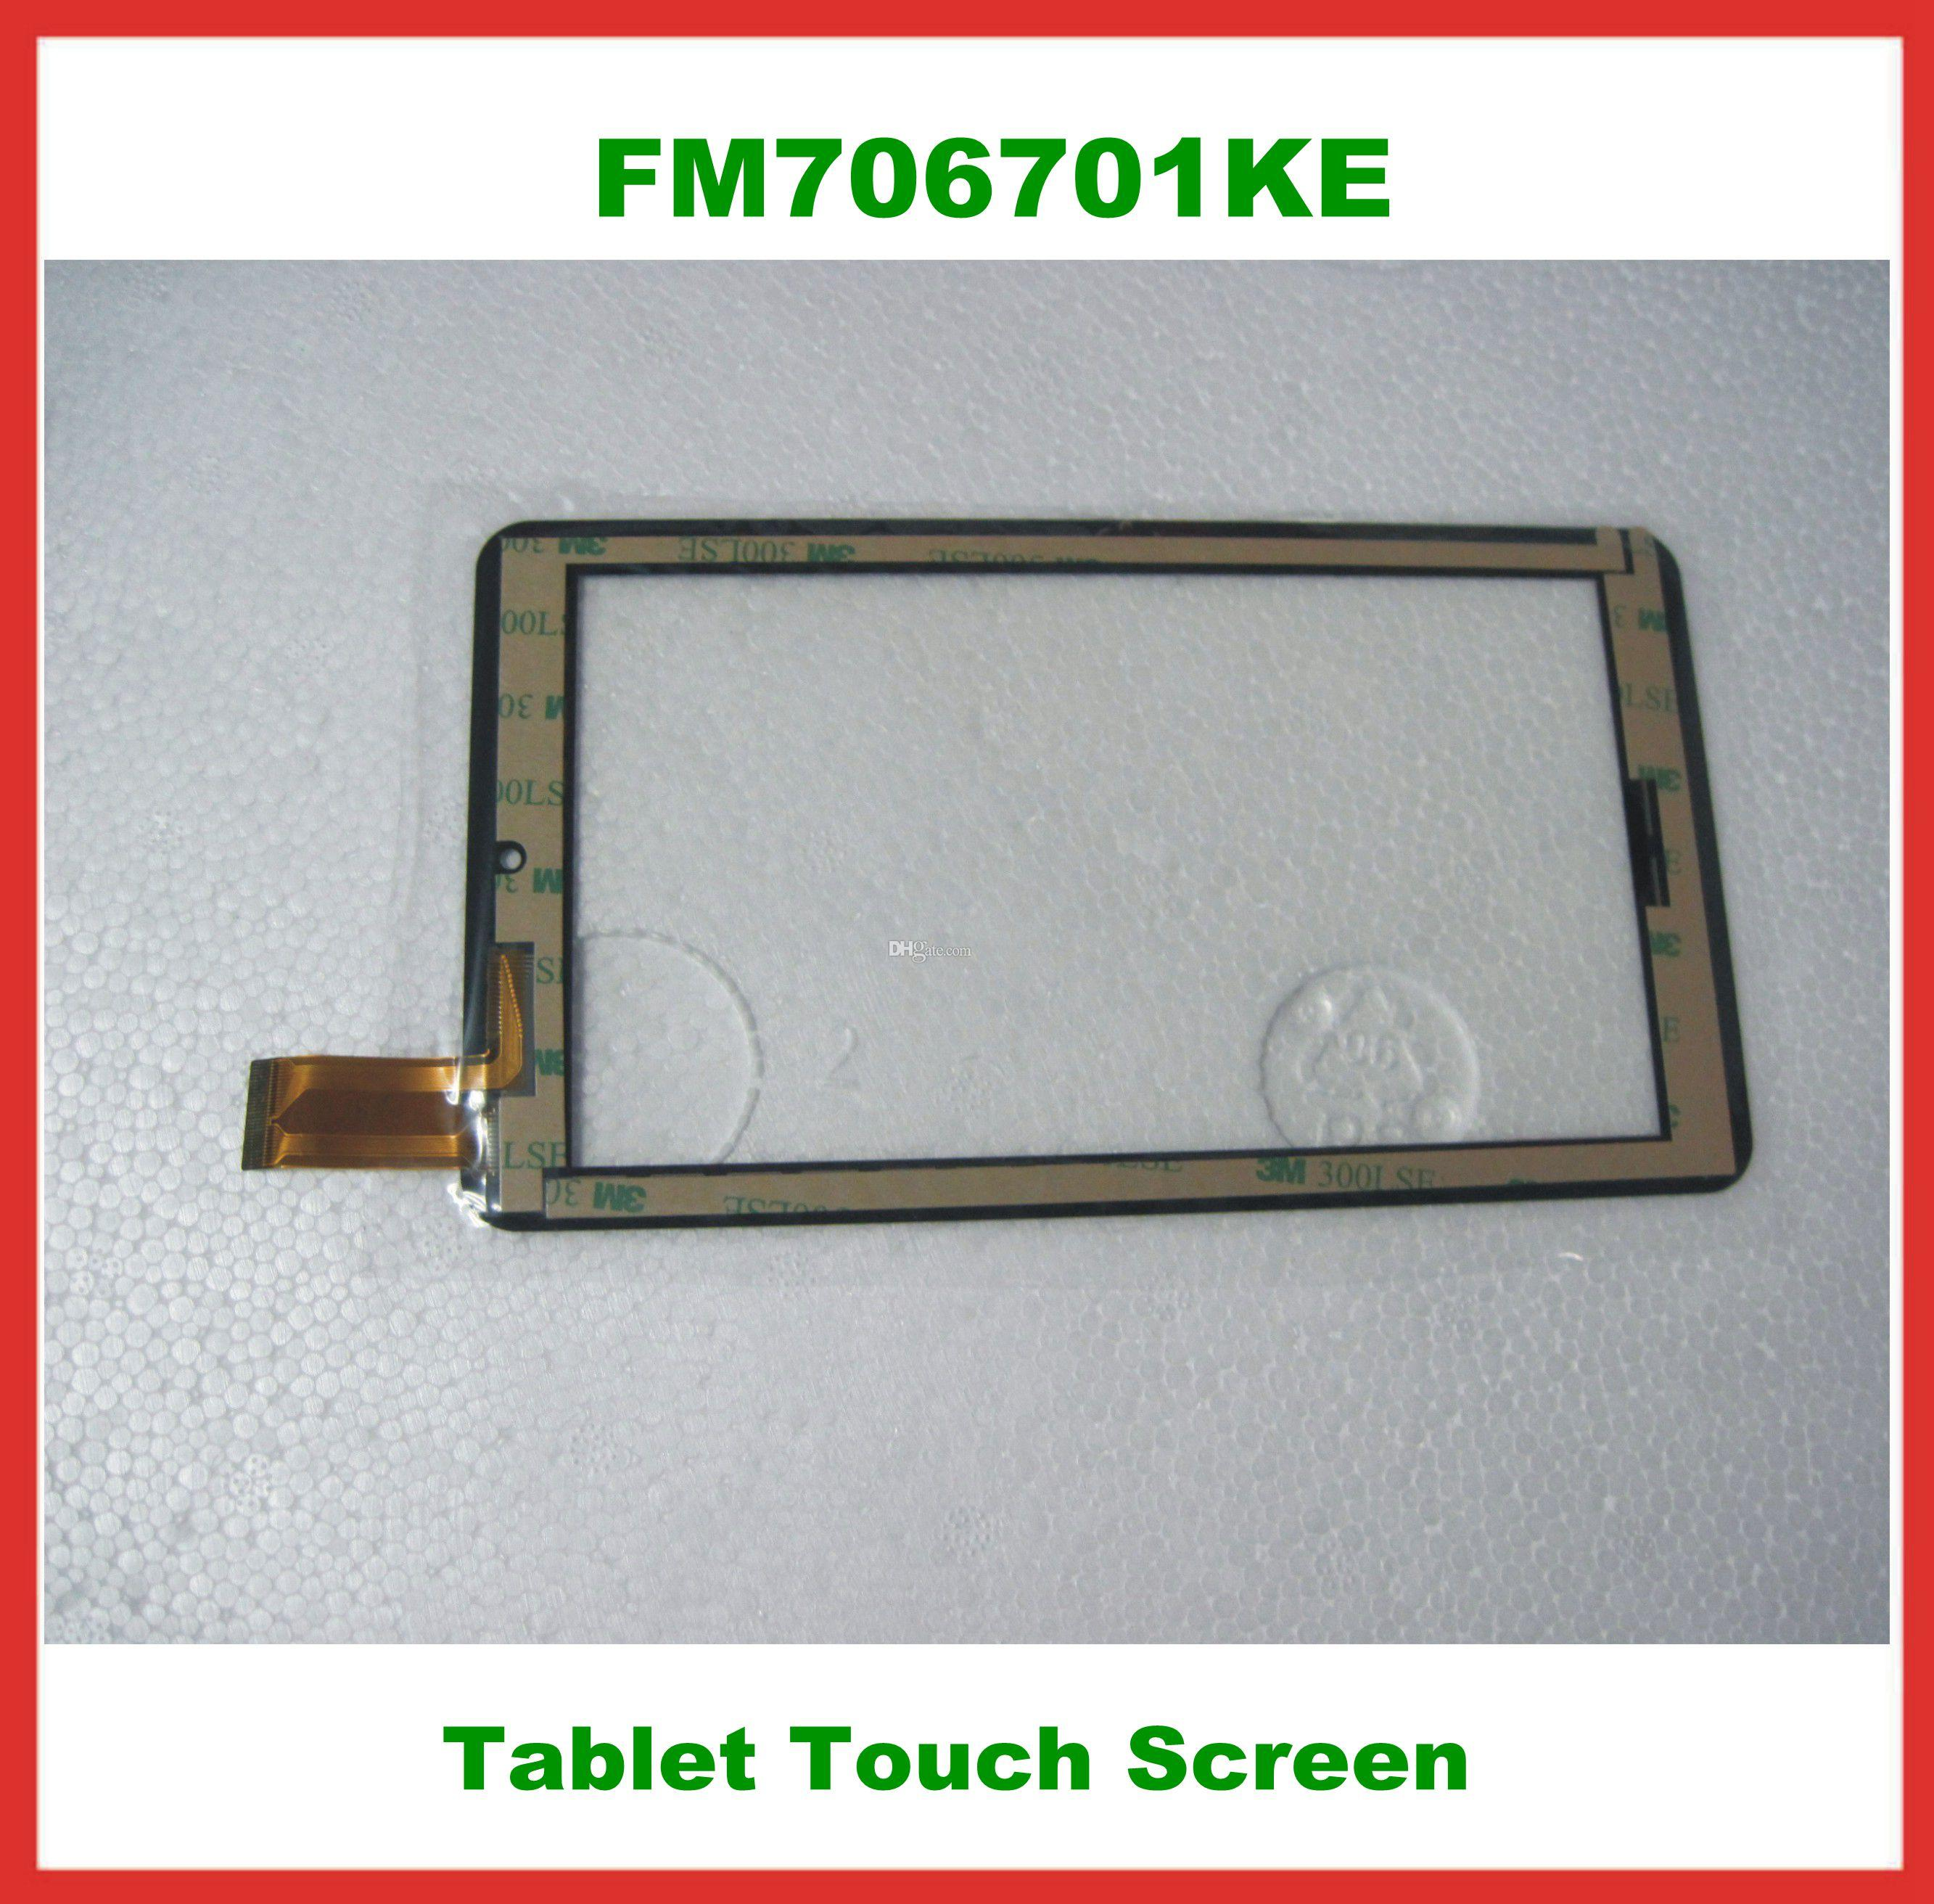 "Ersatz 7 ""Kapazitiver Touchscreen FM706701KE ZP9142-7 Digitizer Panel Für Onda V703 Dual-Core V701S / V711S Quad-Core Tablet PC"